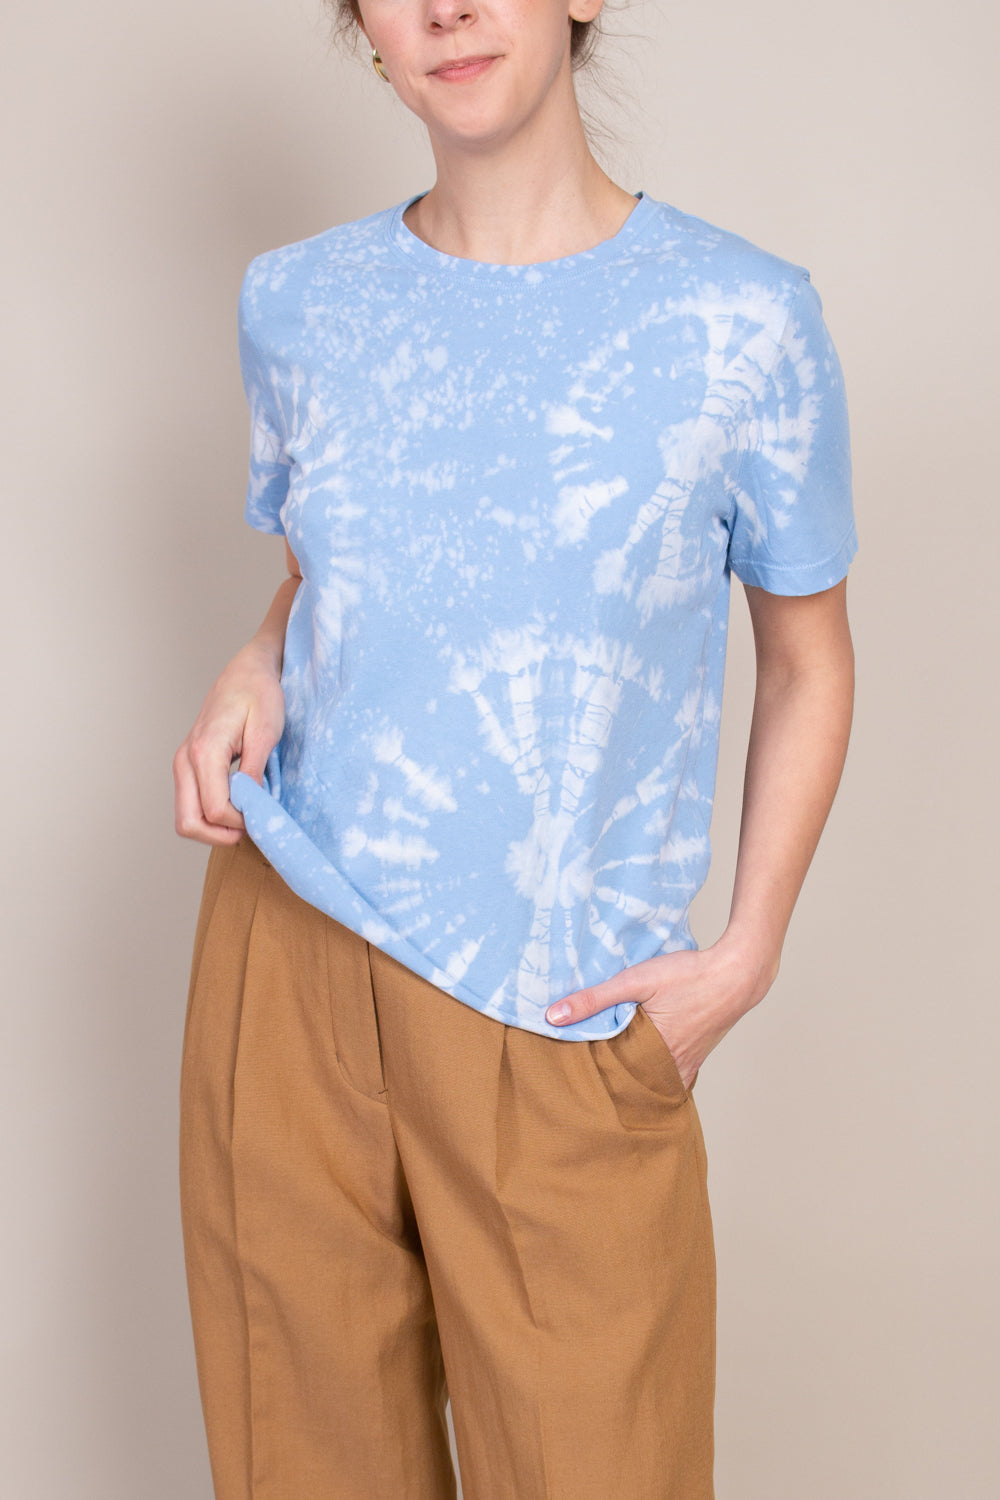 Boy Tee in Blue Constellation